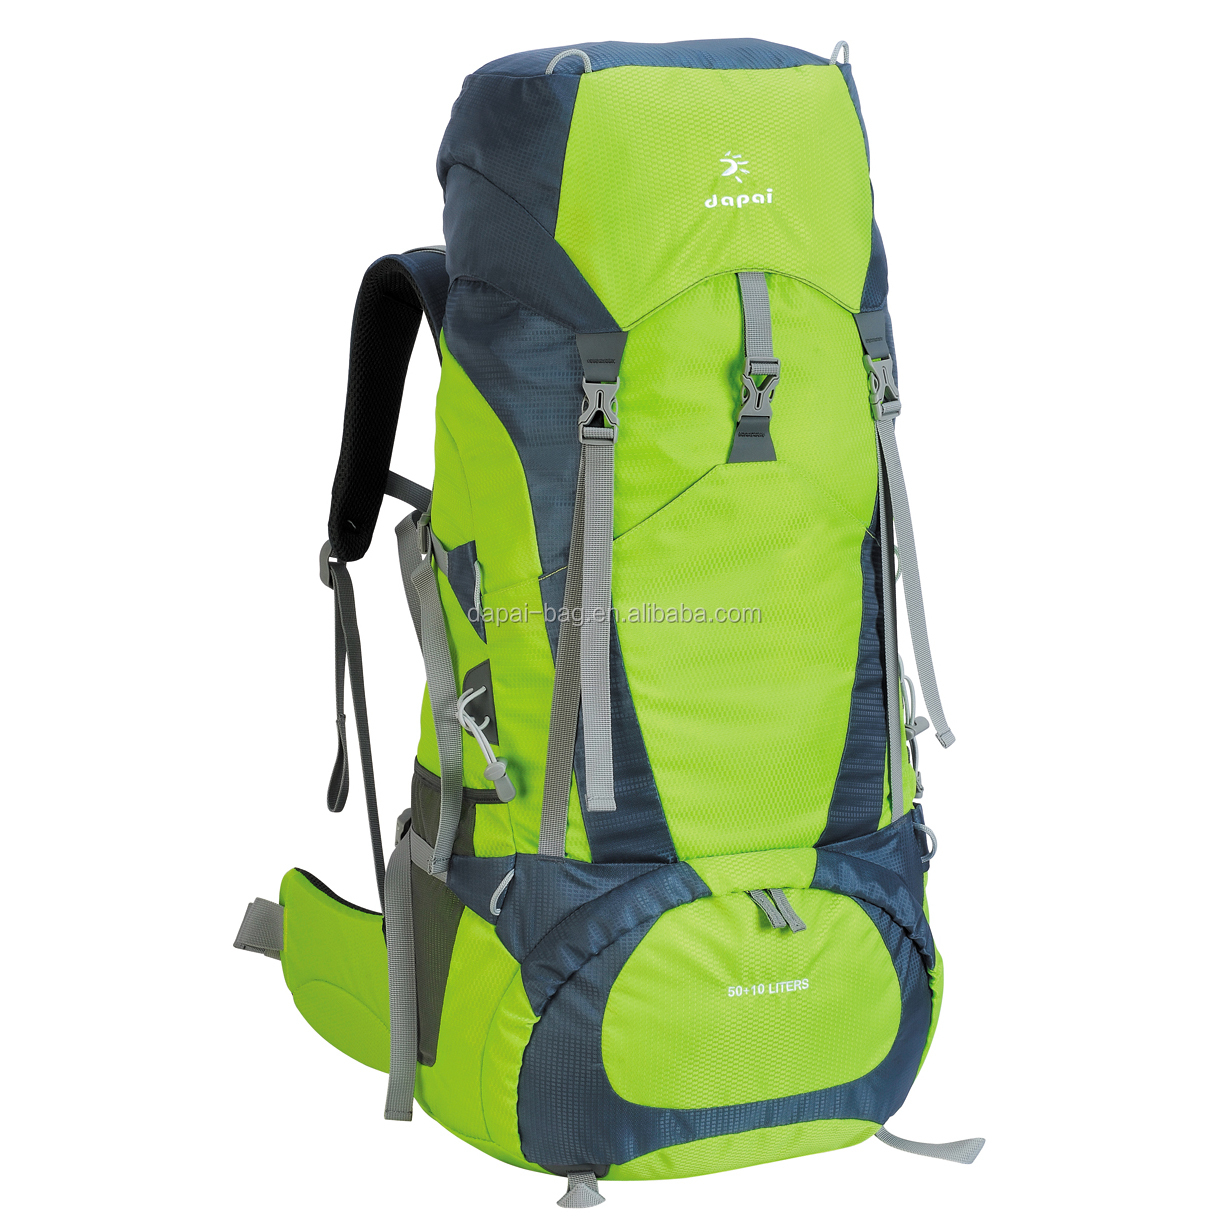 Outdoor Adventure Camping Gear Backcountry Carrier Hiking Backpack 75L